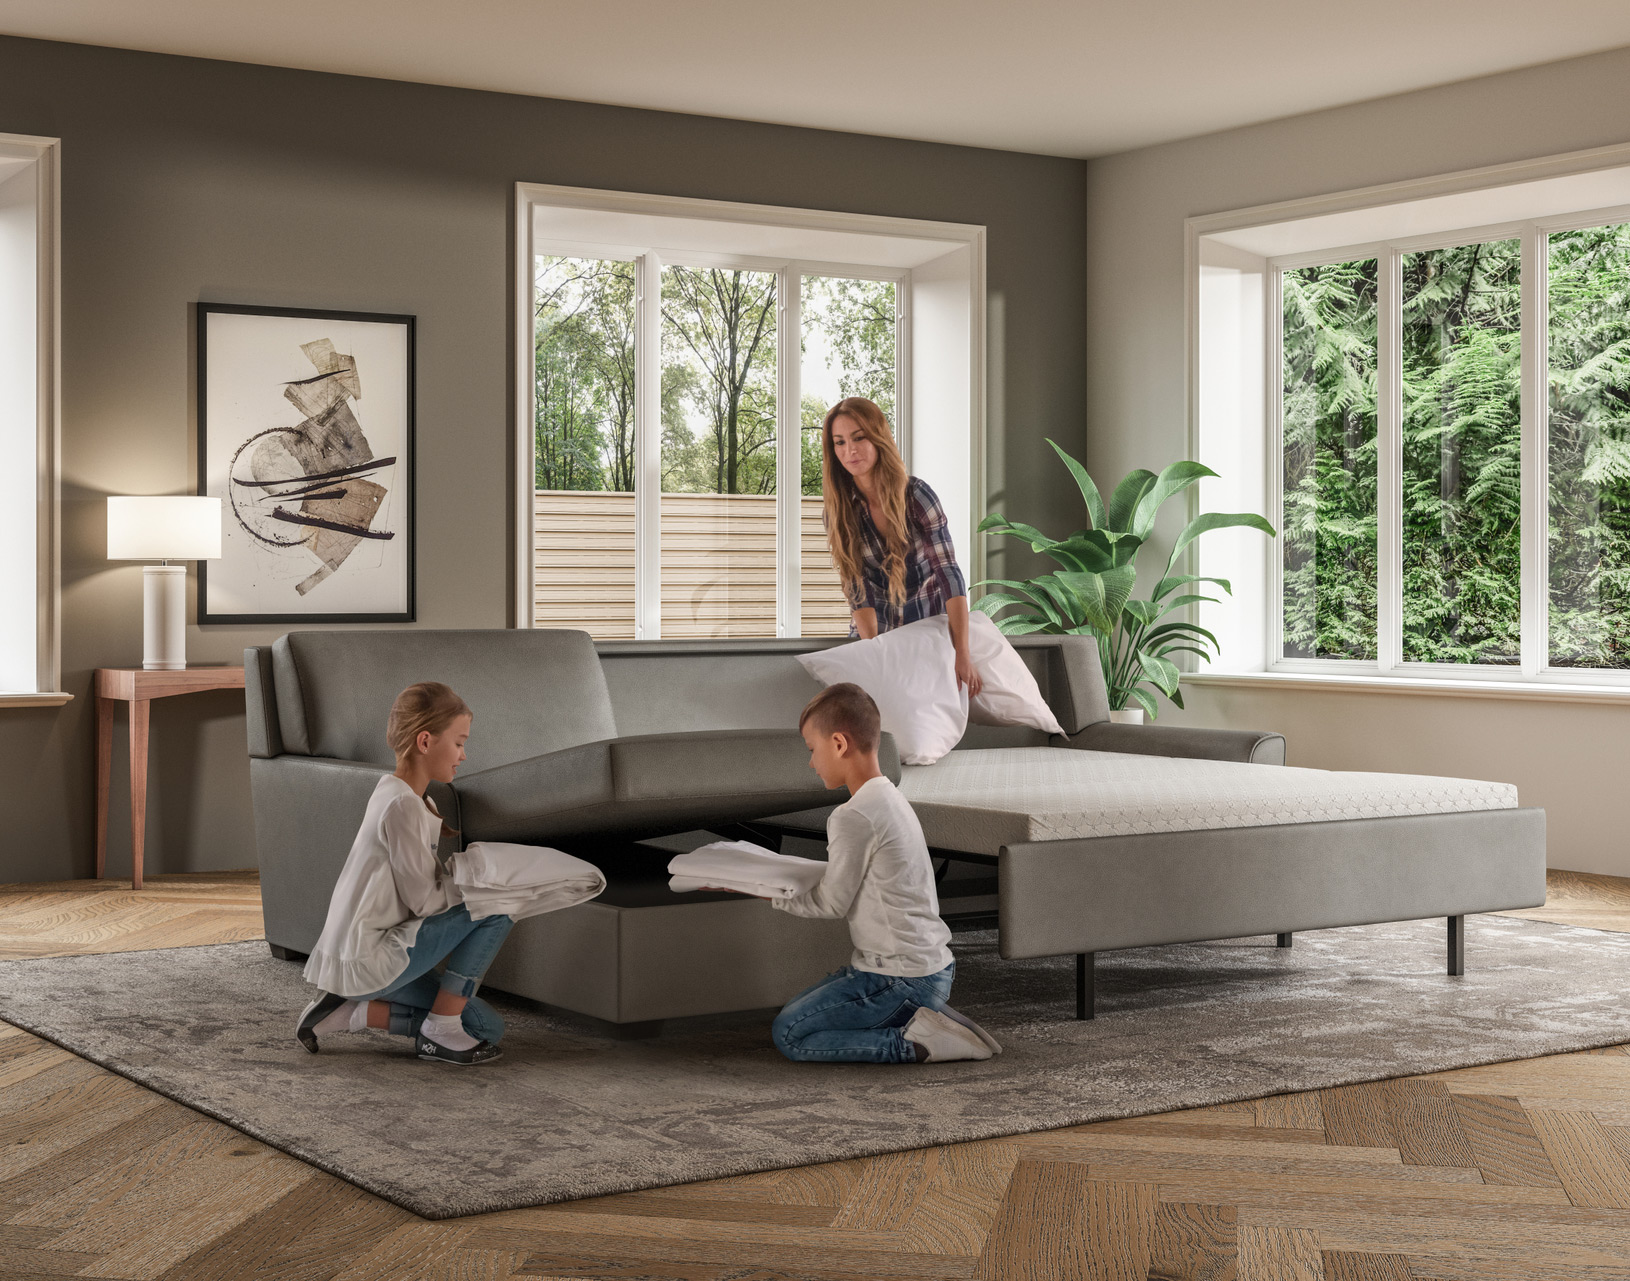 Klein Modern Sleeper Sofa Lifestyle with Kids Cleaning Up